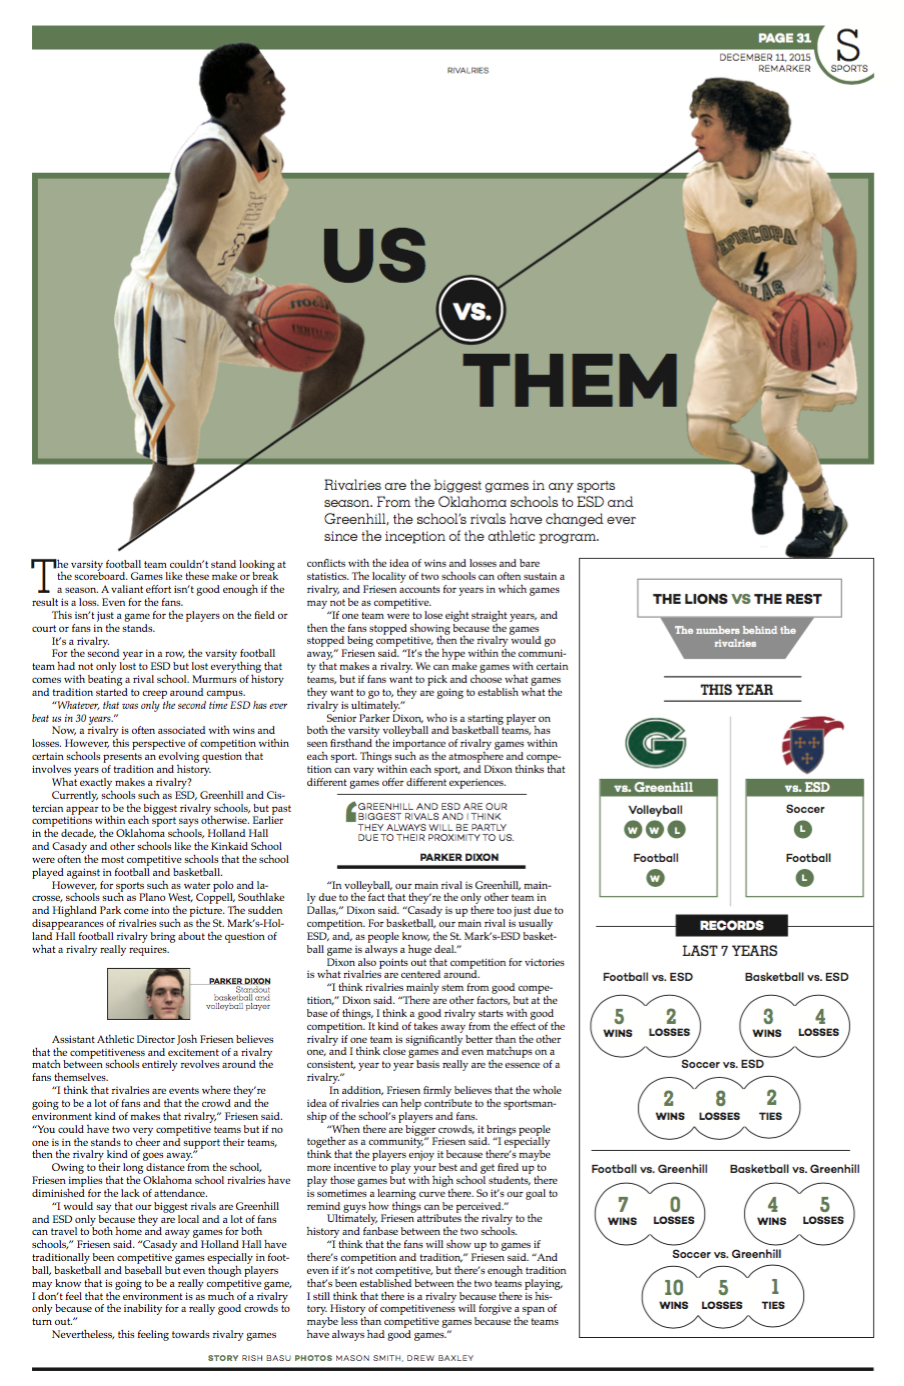 On this page, the contents of the story and packaging of the article establish a strong connection. The duality of the headline package and interactive infographic immediately give the reader an understanding of what the story is about: rivalries.